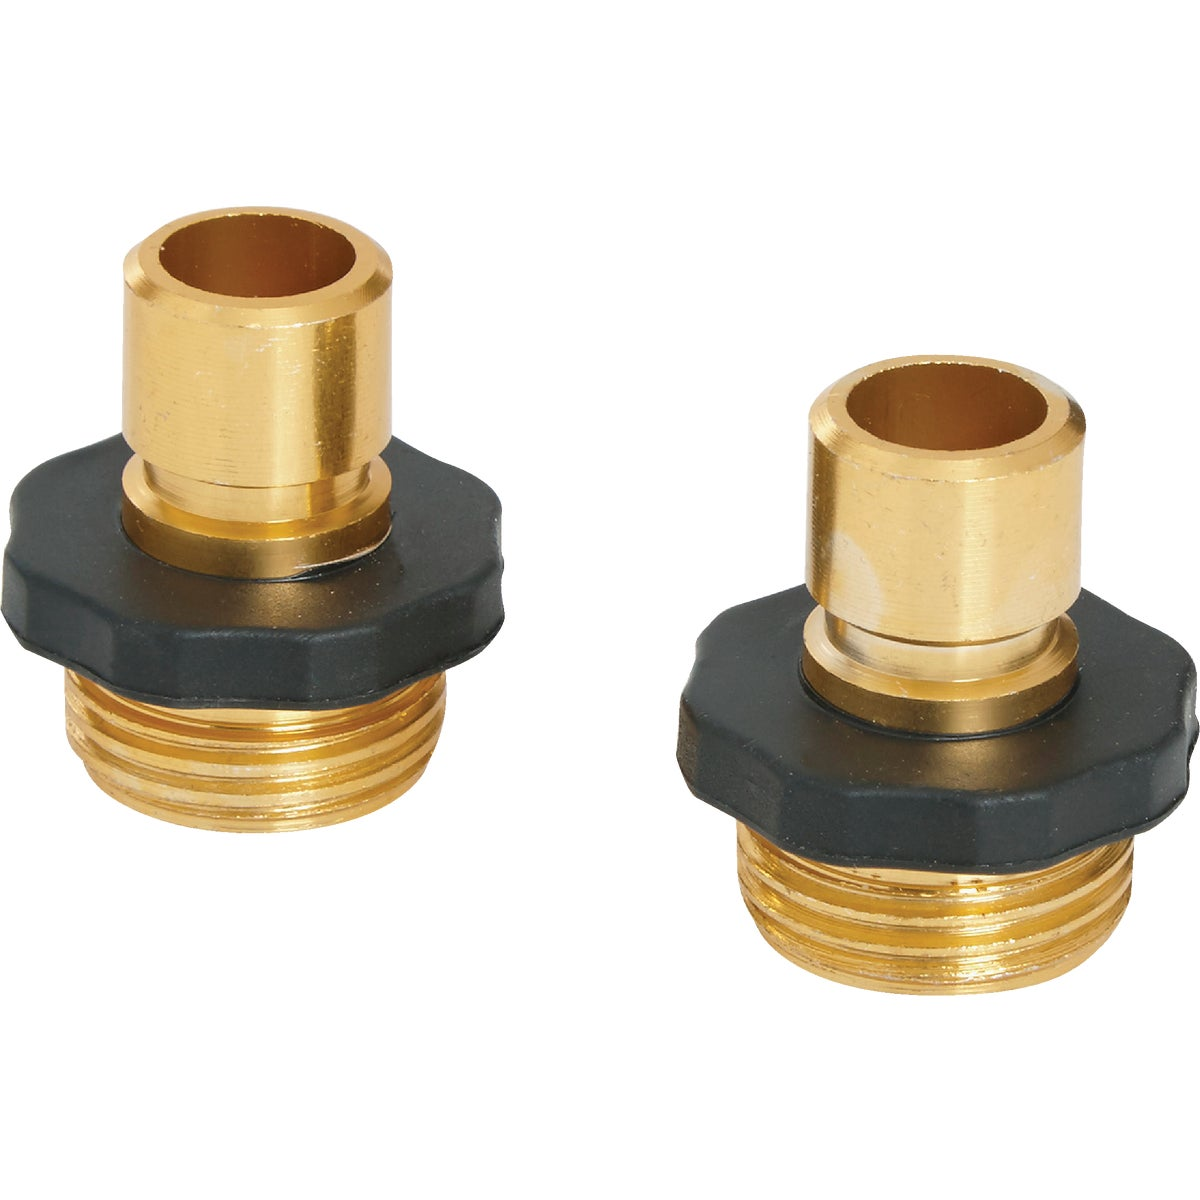 MALE QUICK BRASS COUPLER - DIB09QCM by Bosch G W Gs